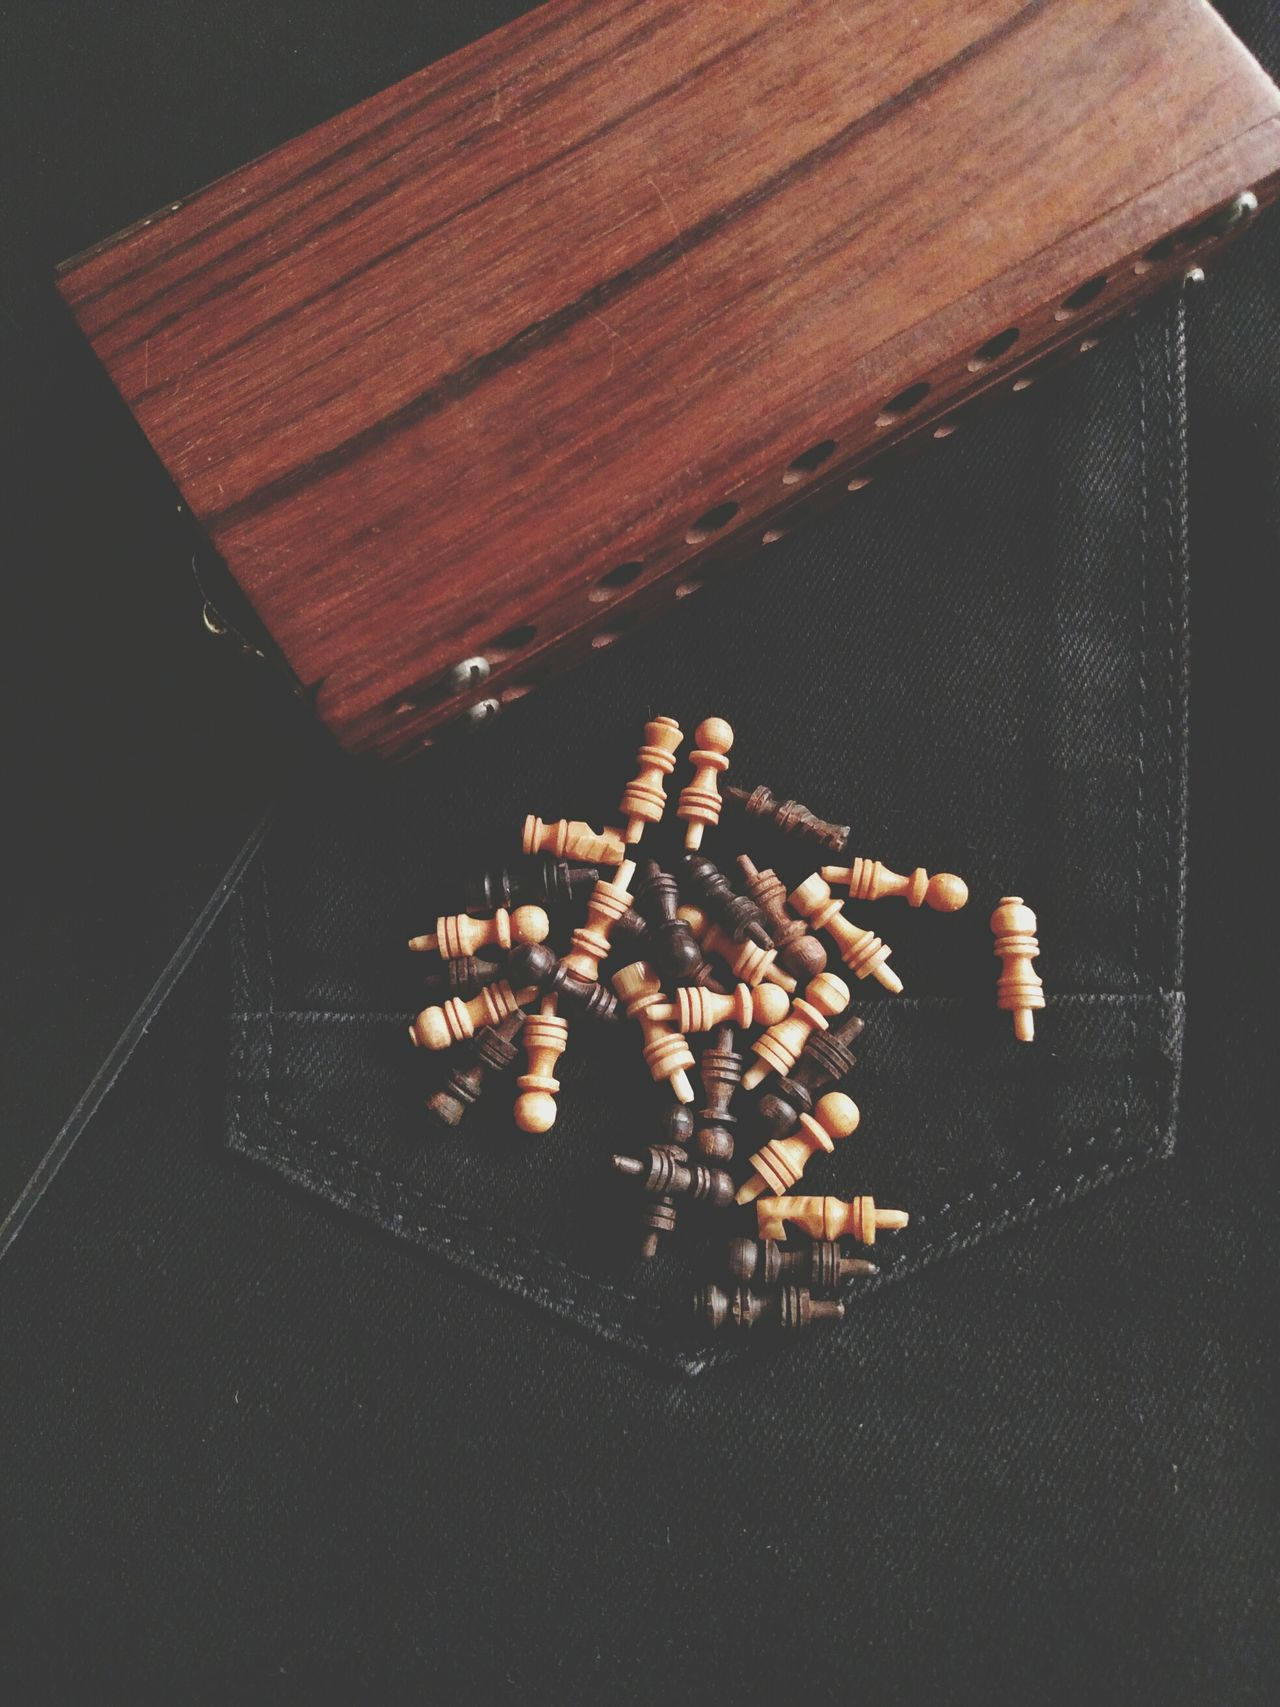 Chesspieces Wooden Chess Board Chess Old Old Wooden Chess Old Style Cool Stuff Cool Rare Items Vintage Stuff Classic Day Indoors  No People Old Is Gold India Indian Vintage Small Mobile Photography Lieblingsteil Second Acts Be. Ready.